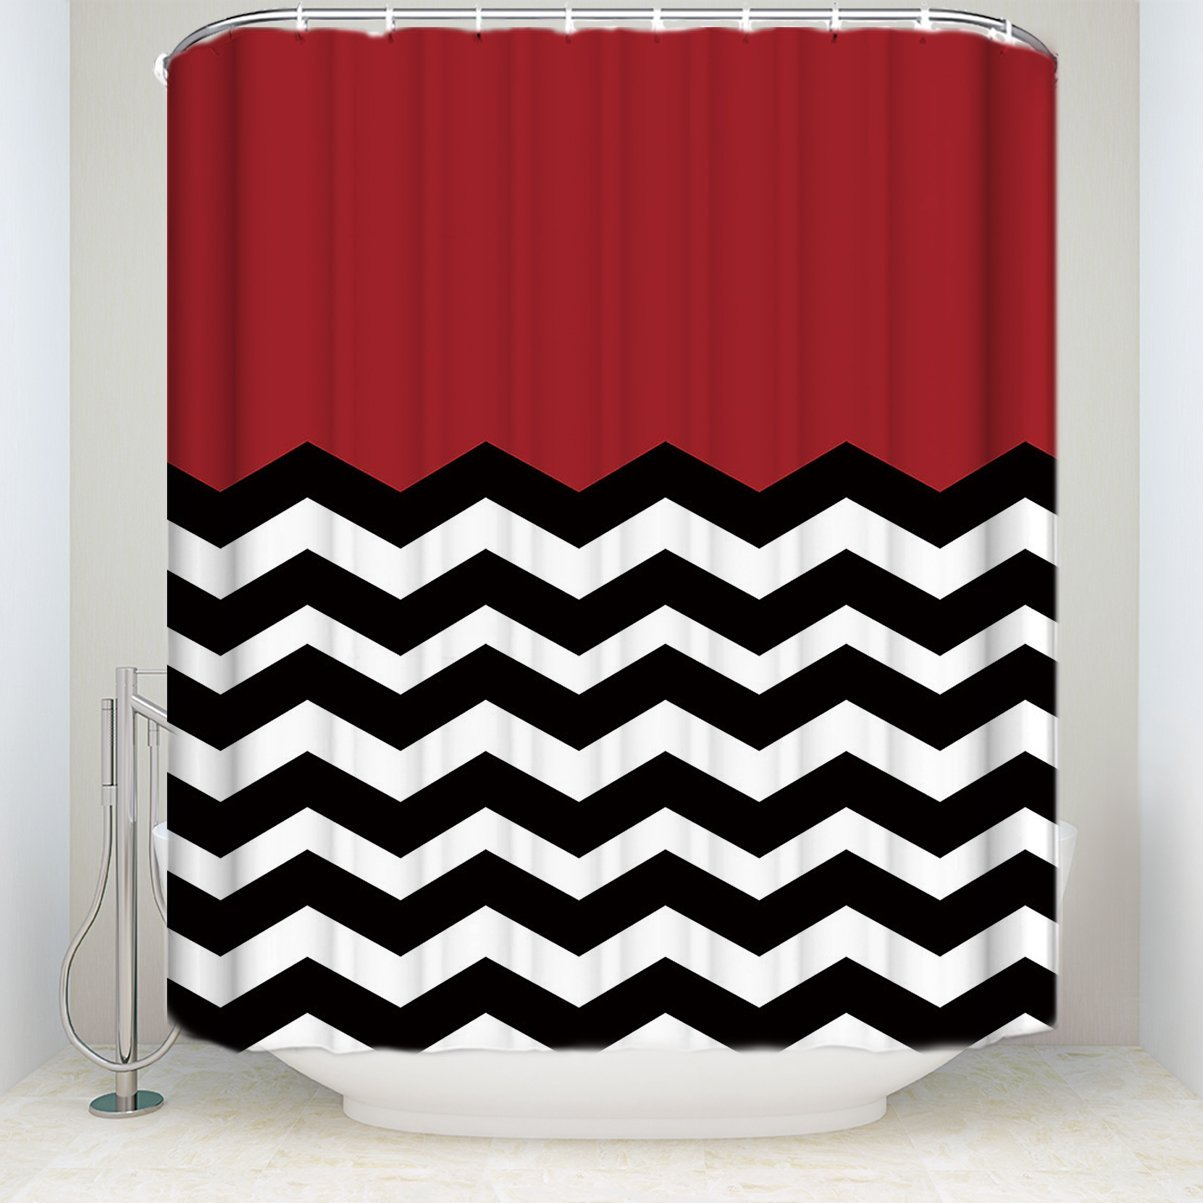 Us 16 01 40 Off Chevron Waterproof Polyester Fabric Shower Curtain Red White Black Striped Mold Resistant Shower Curtains In Shower Curtains From